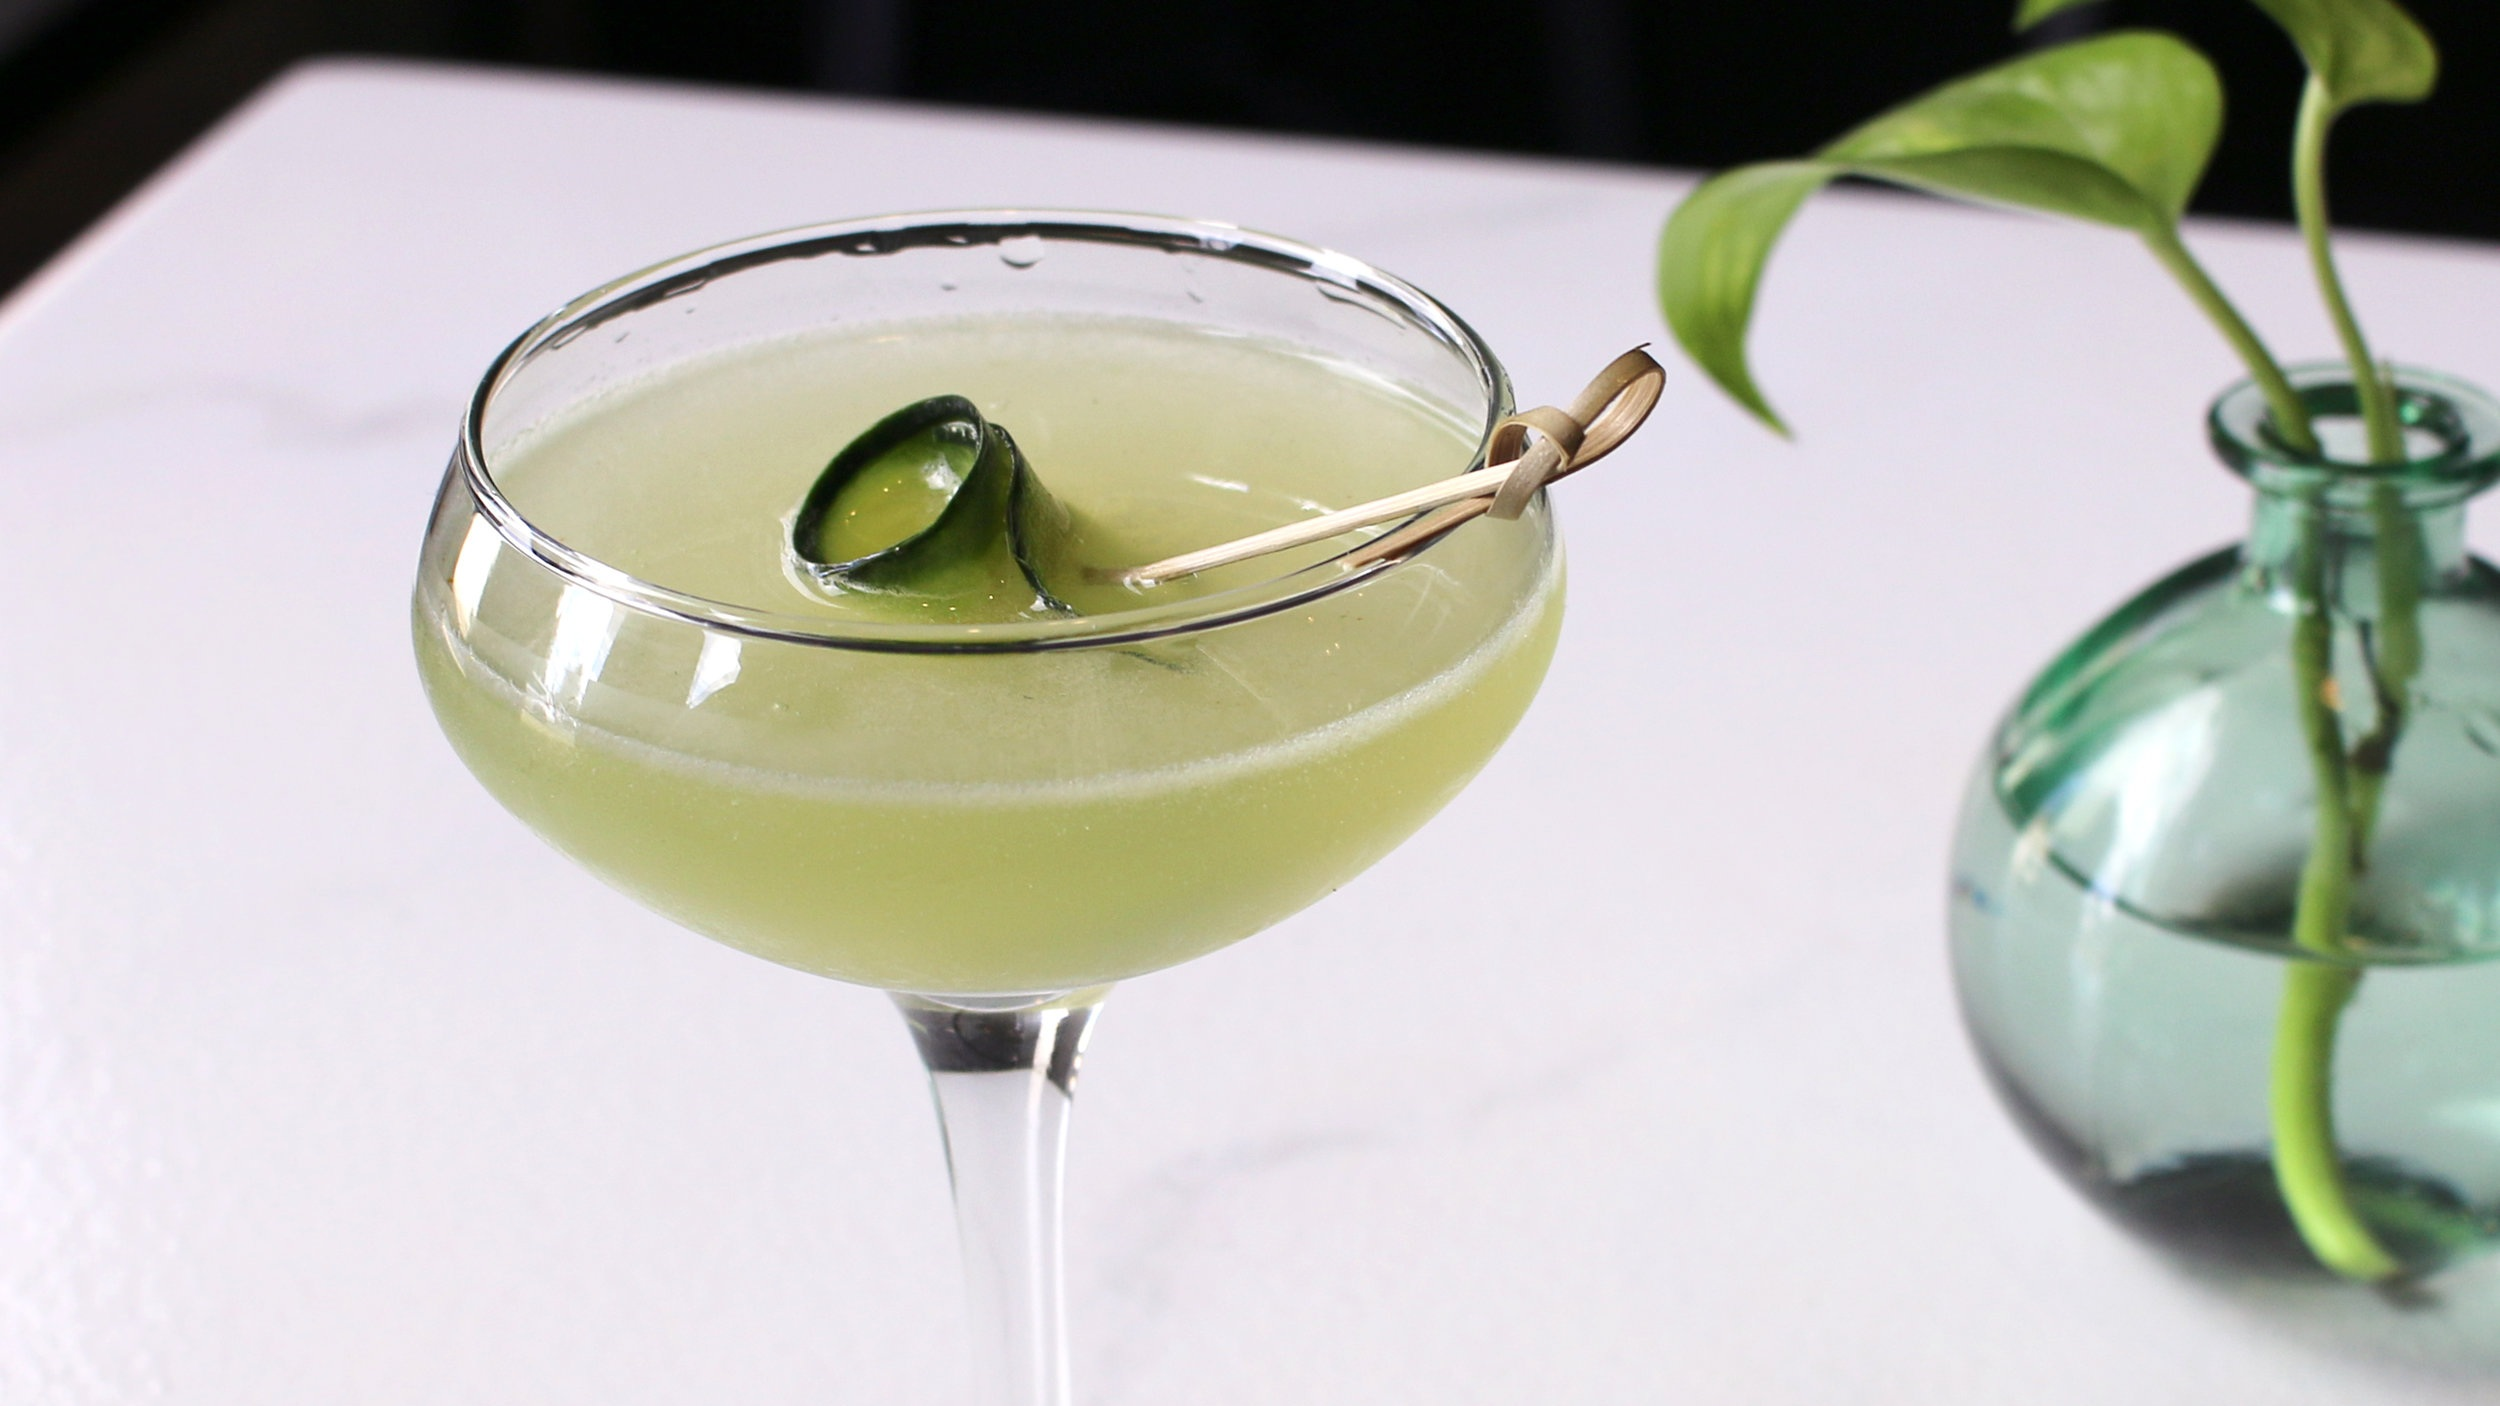 cucumber_blossom_ontable_cocktails_rut.jpg